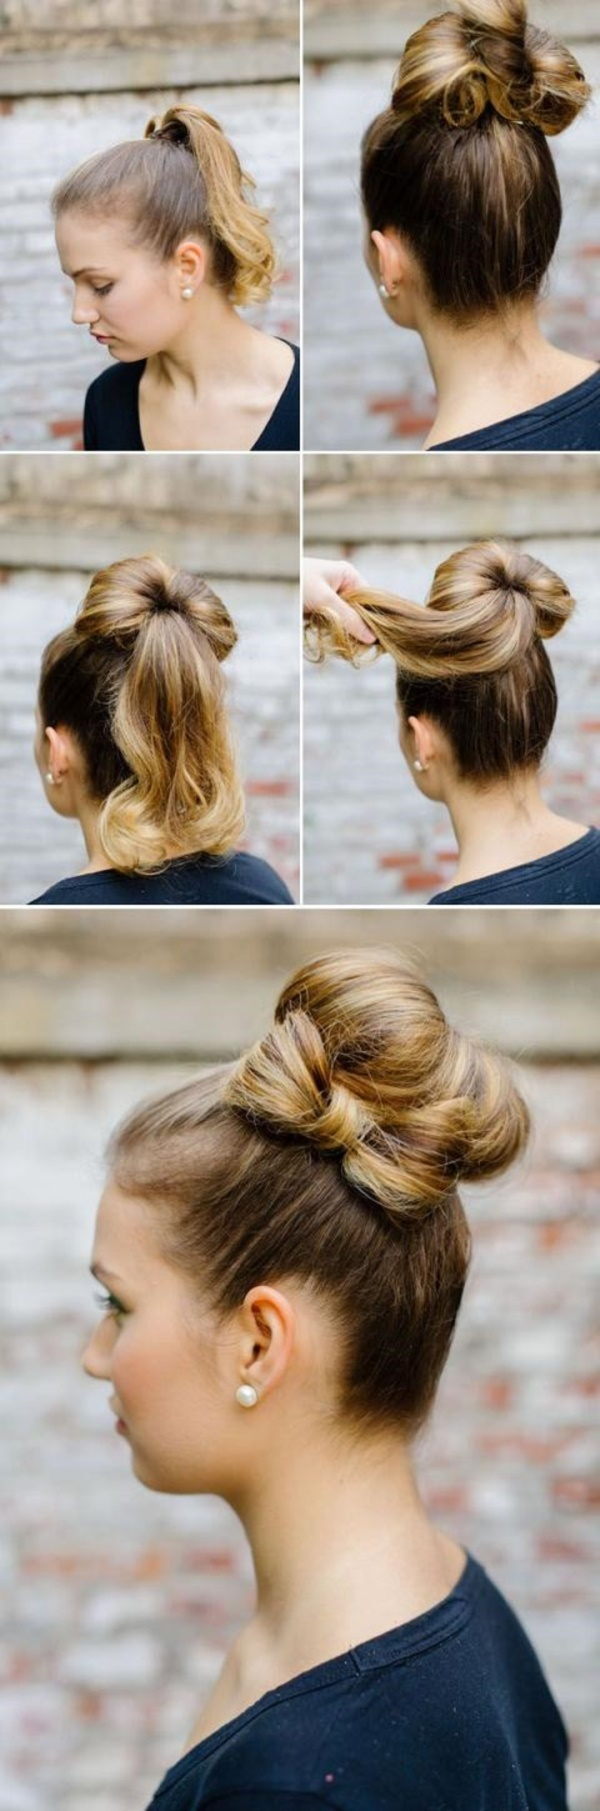 101 Easy DIY Hairstyles for Medium and Long Hair to snatch attention